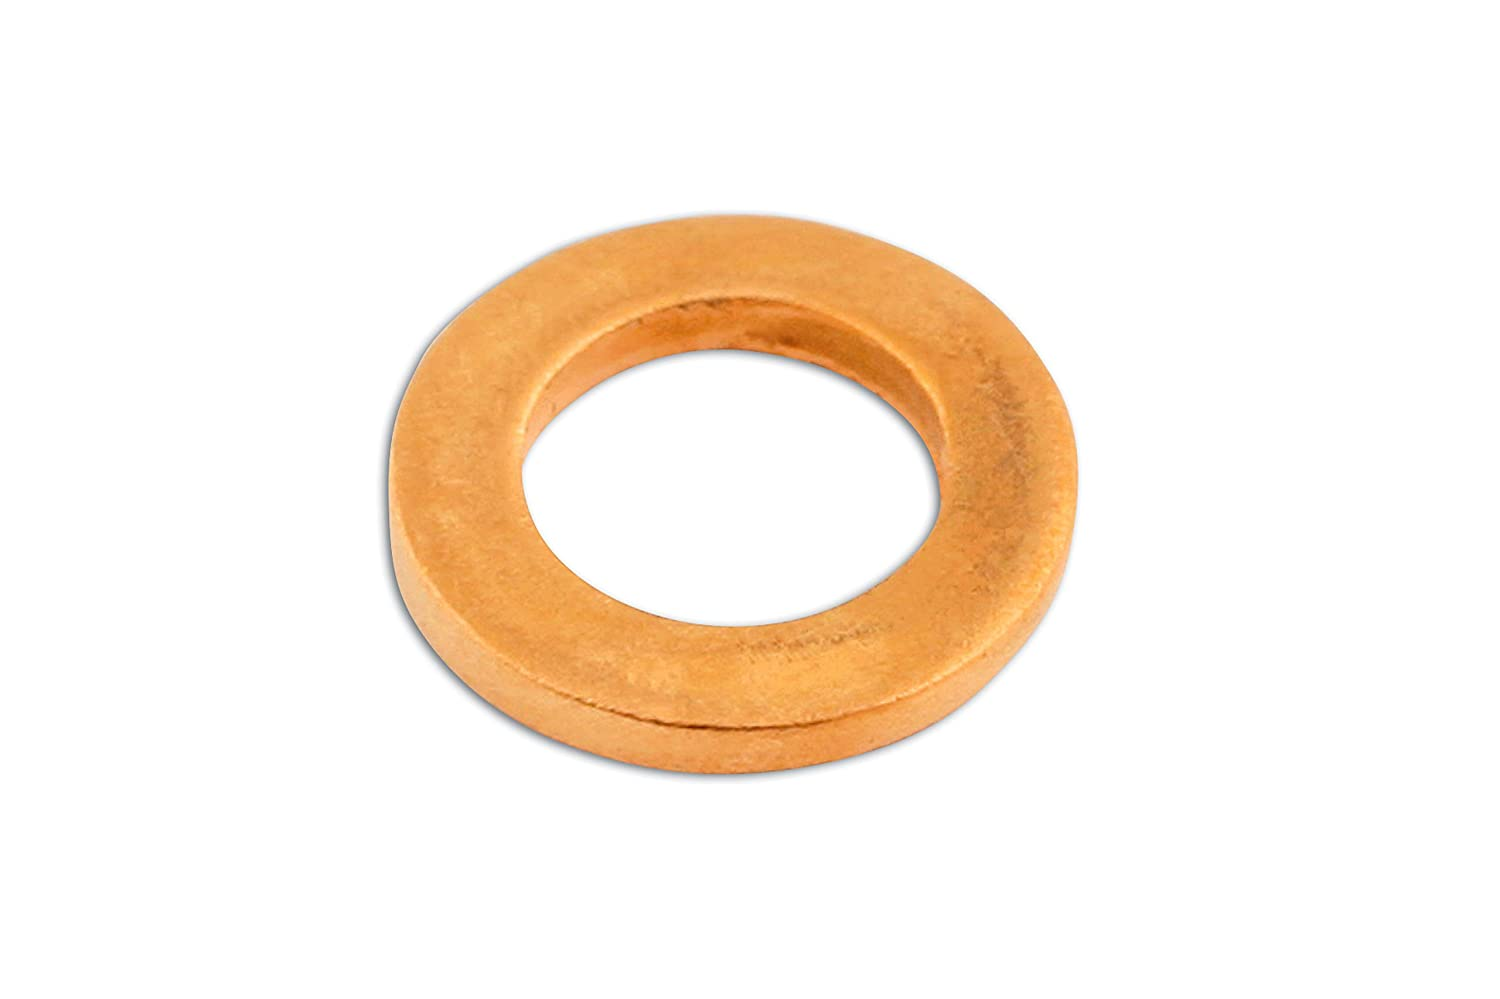 Connect 31829 M8 x 14 x 1mm Copper Sealing Washer The Tool Connection Ltd.